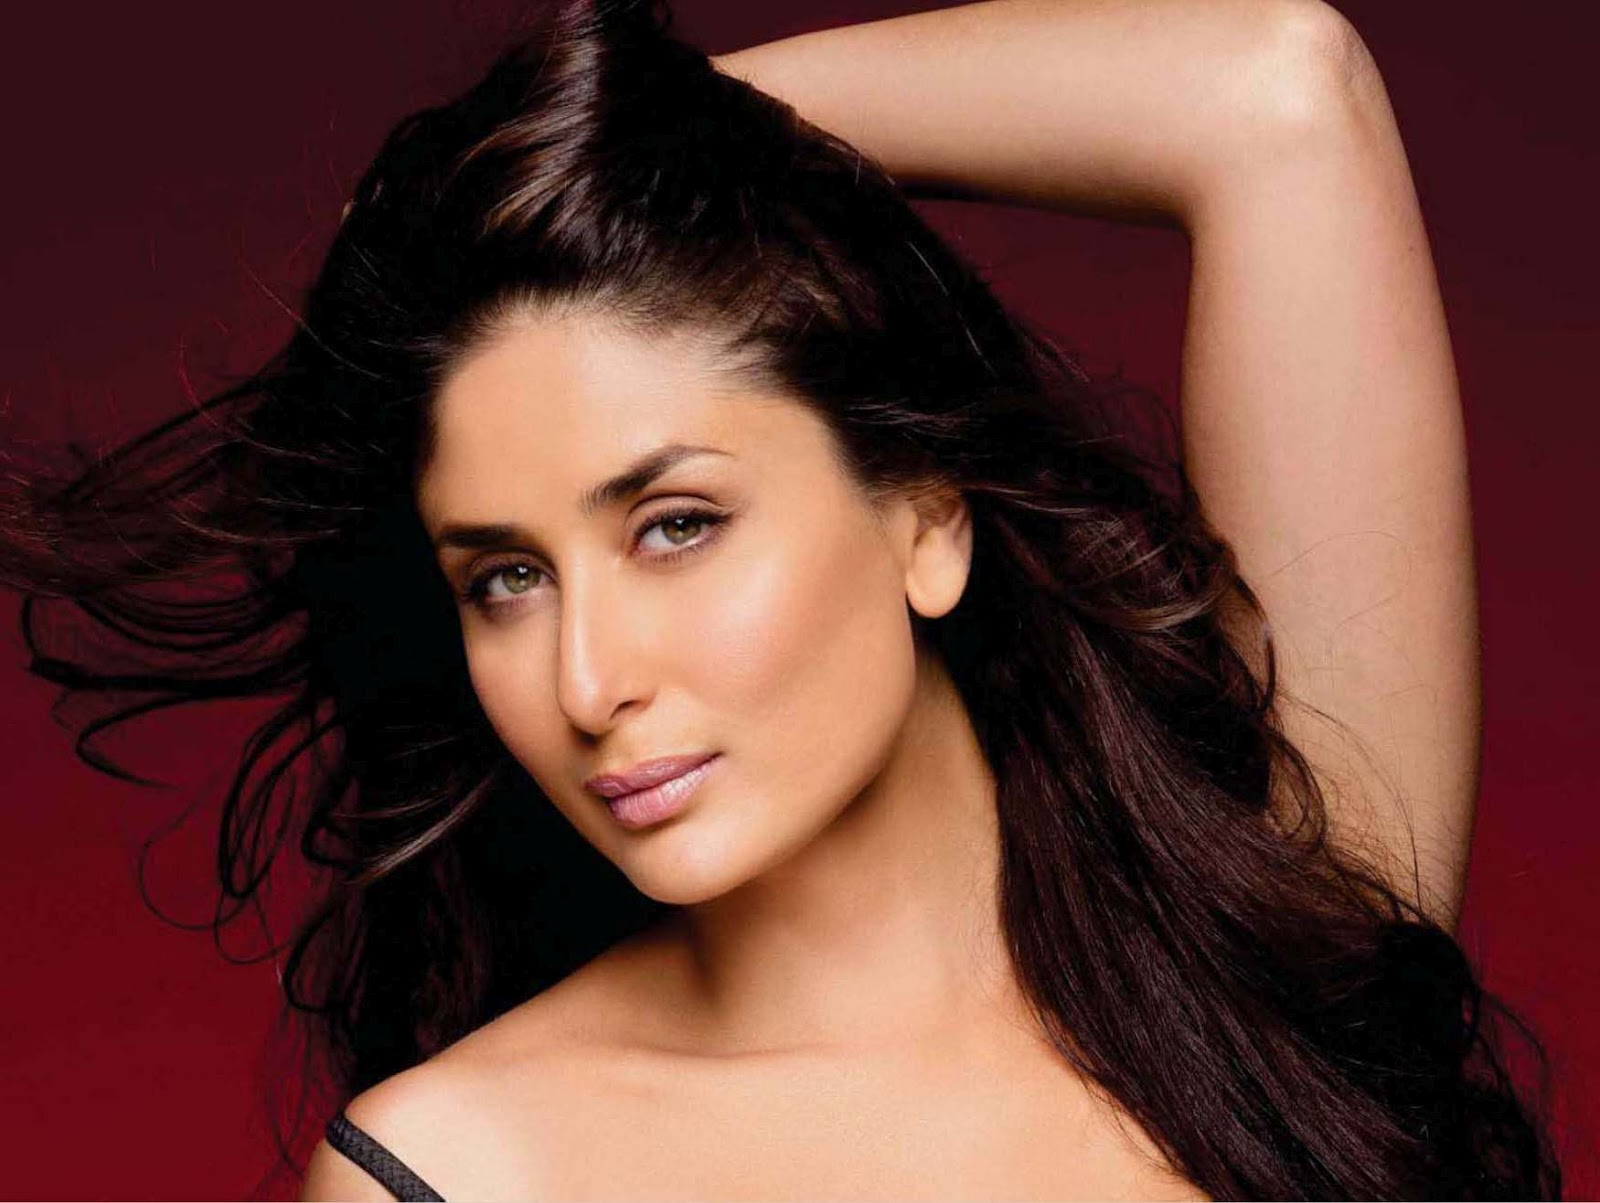 Bollywood Actresses In Maxim: Kareena Kapoor Maxim(India) Magazine September 2012 Hot